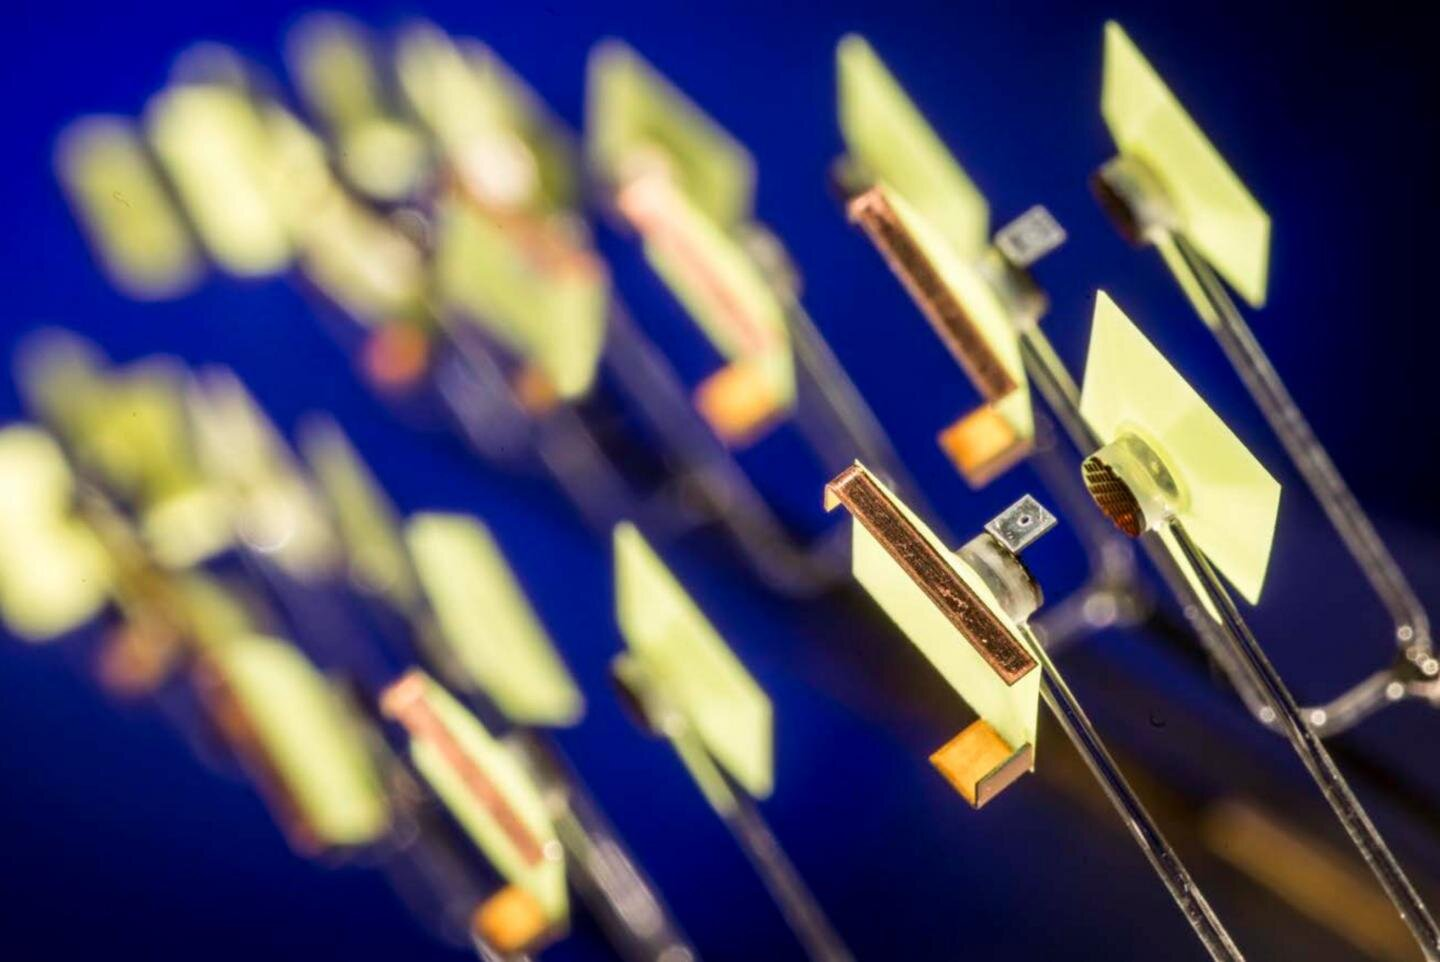 Laser-driven experiments provide insights into the formation of the un... image